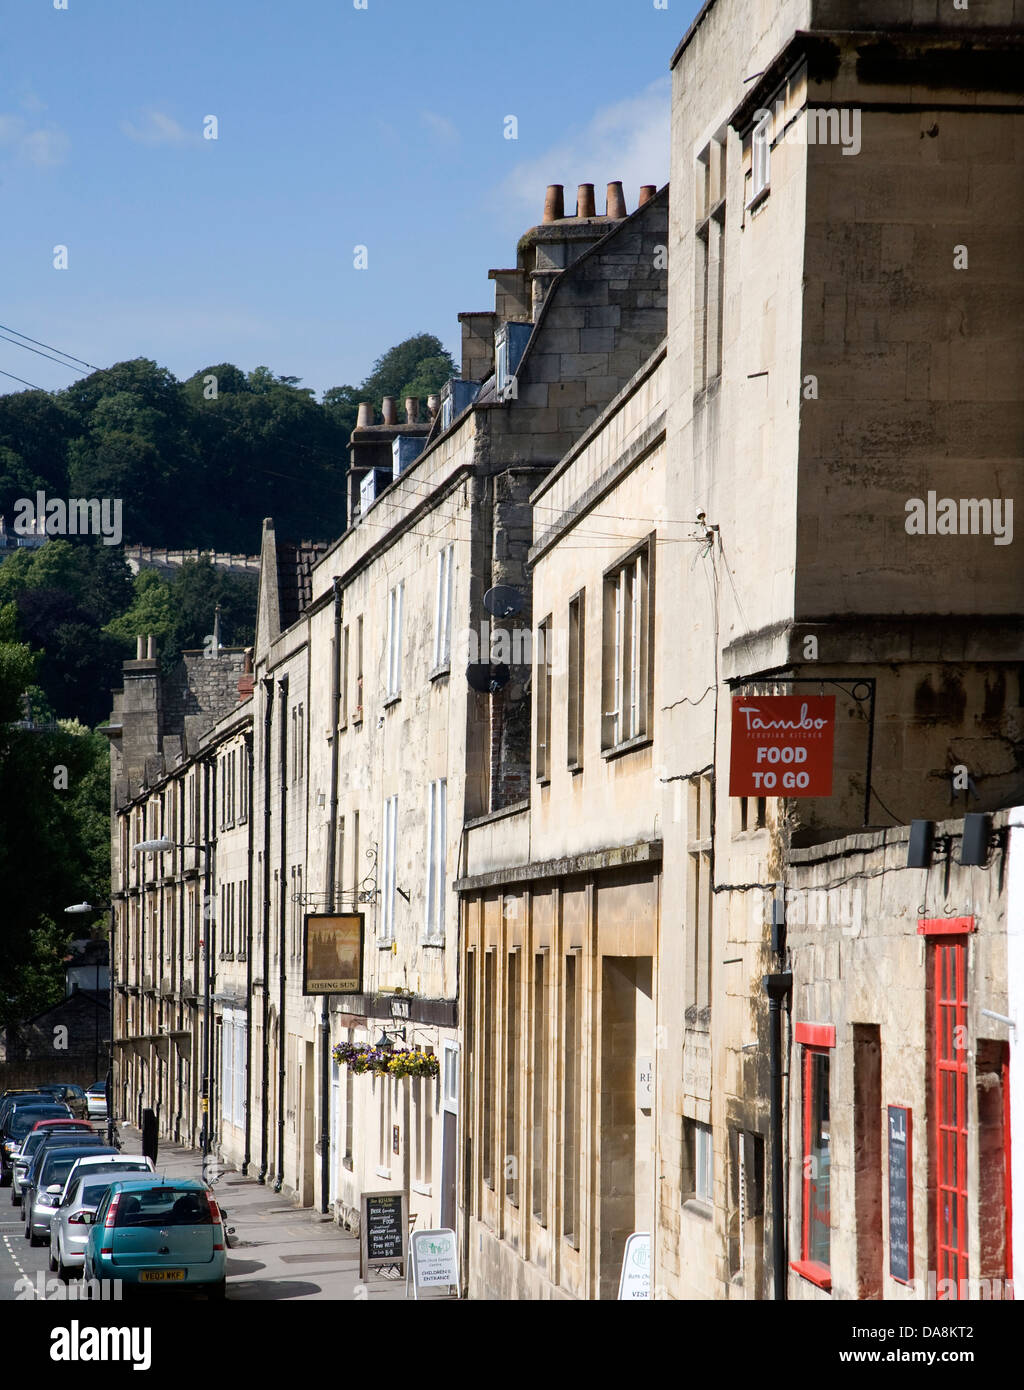 Buildings in Grove Street, Bath, Somerset, England including the Rising Sun pub - Stock Image